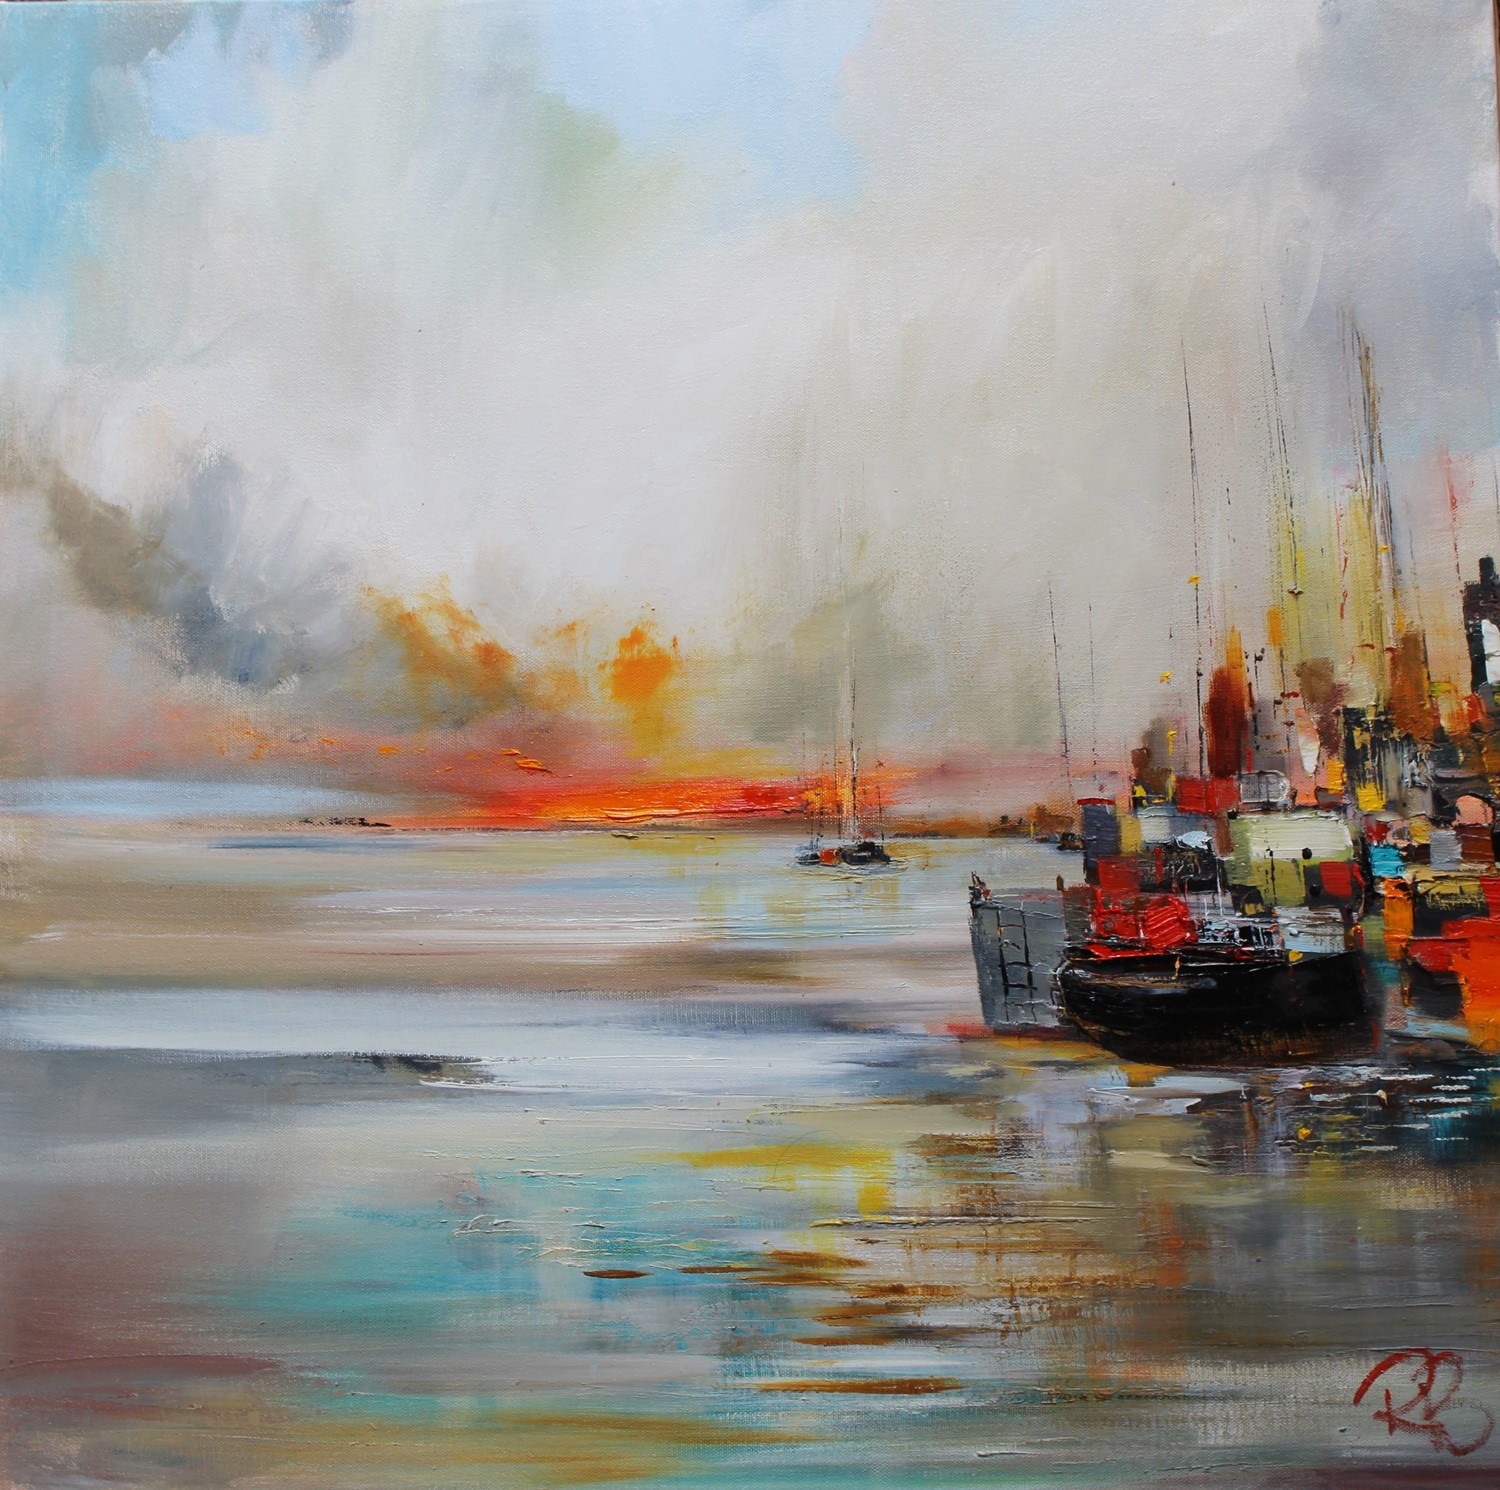 'Fishing Harbour' by artist Rosanne Barr